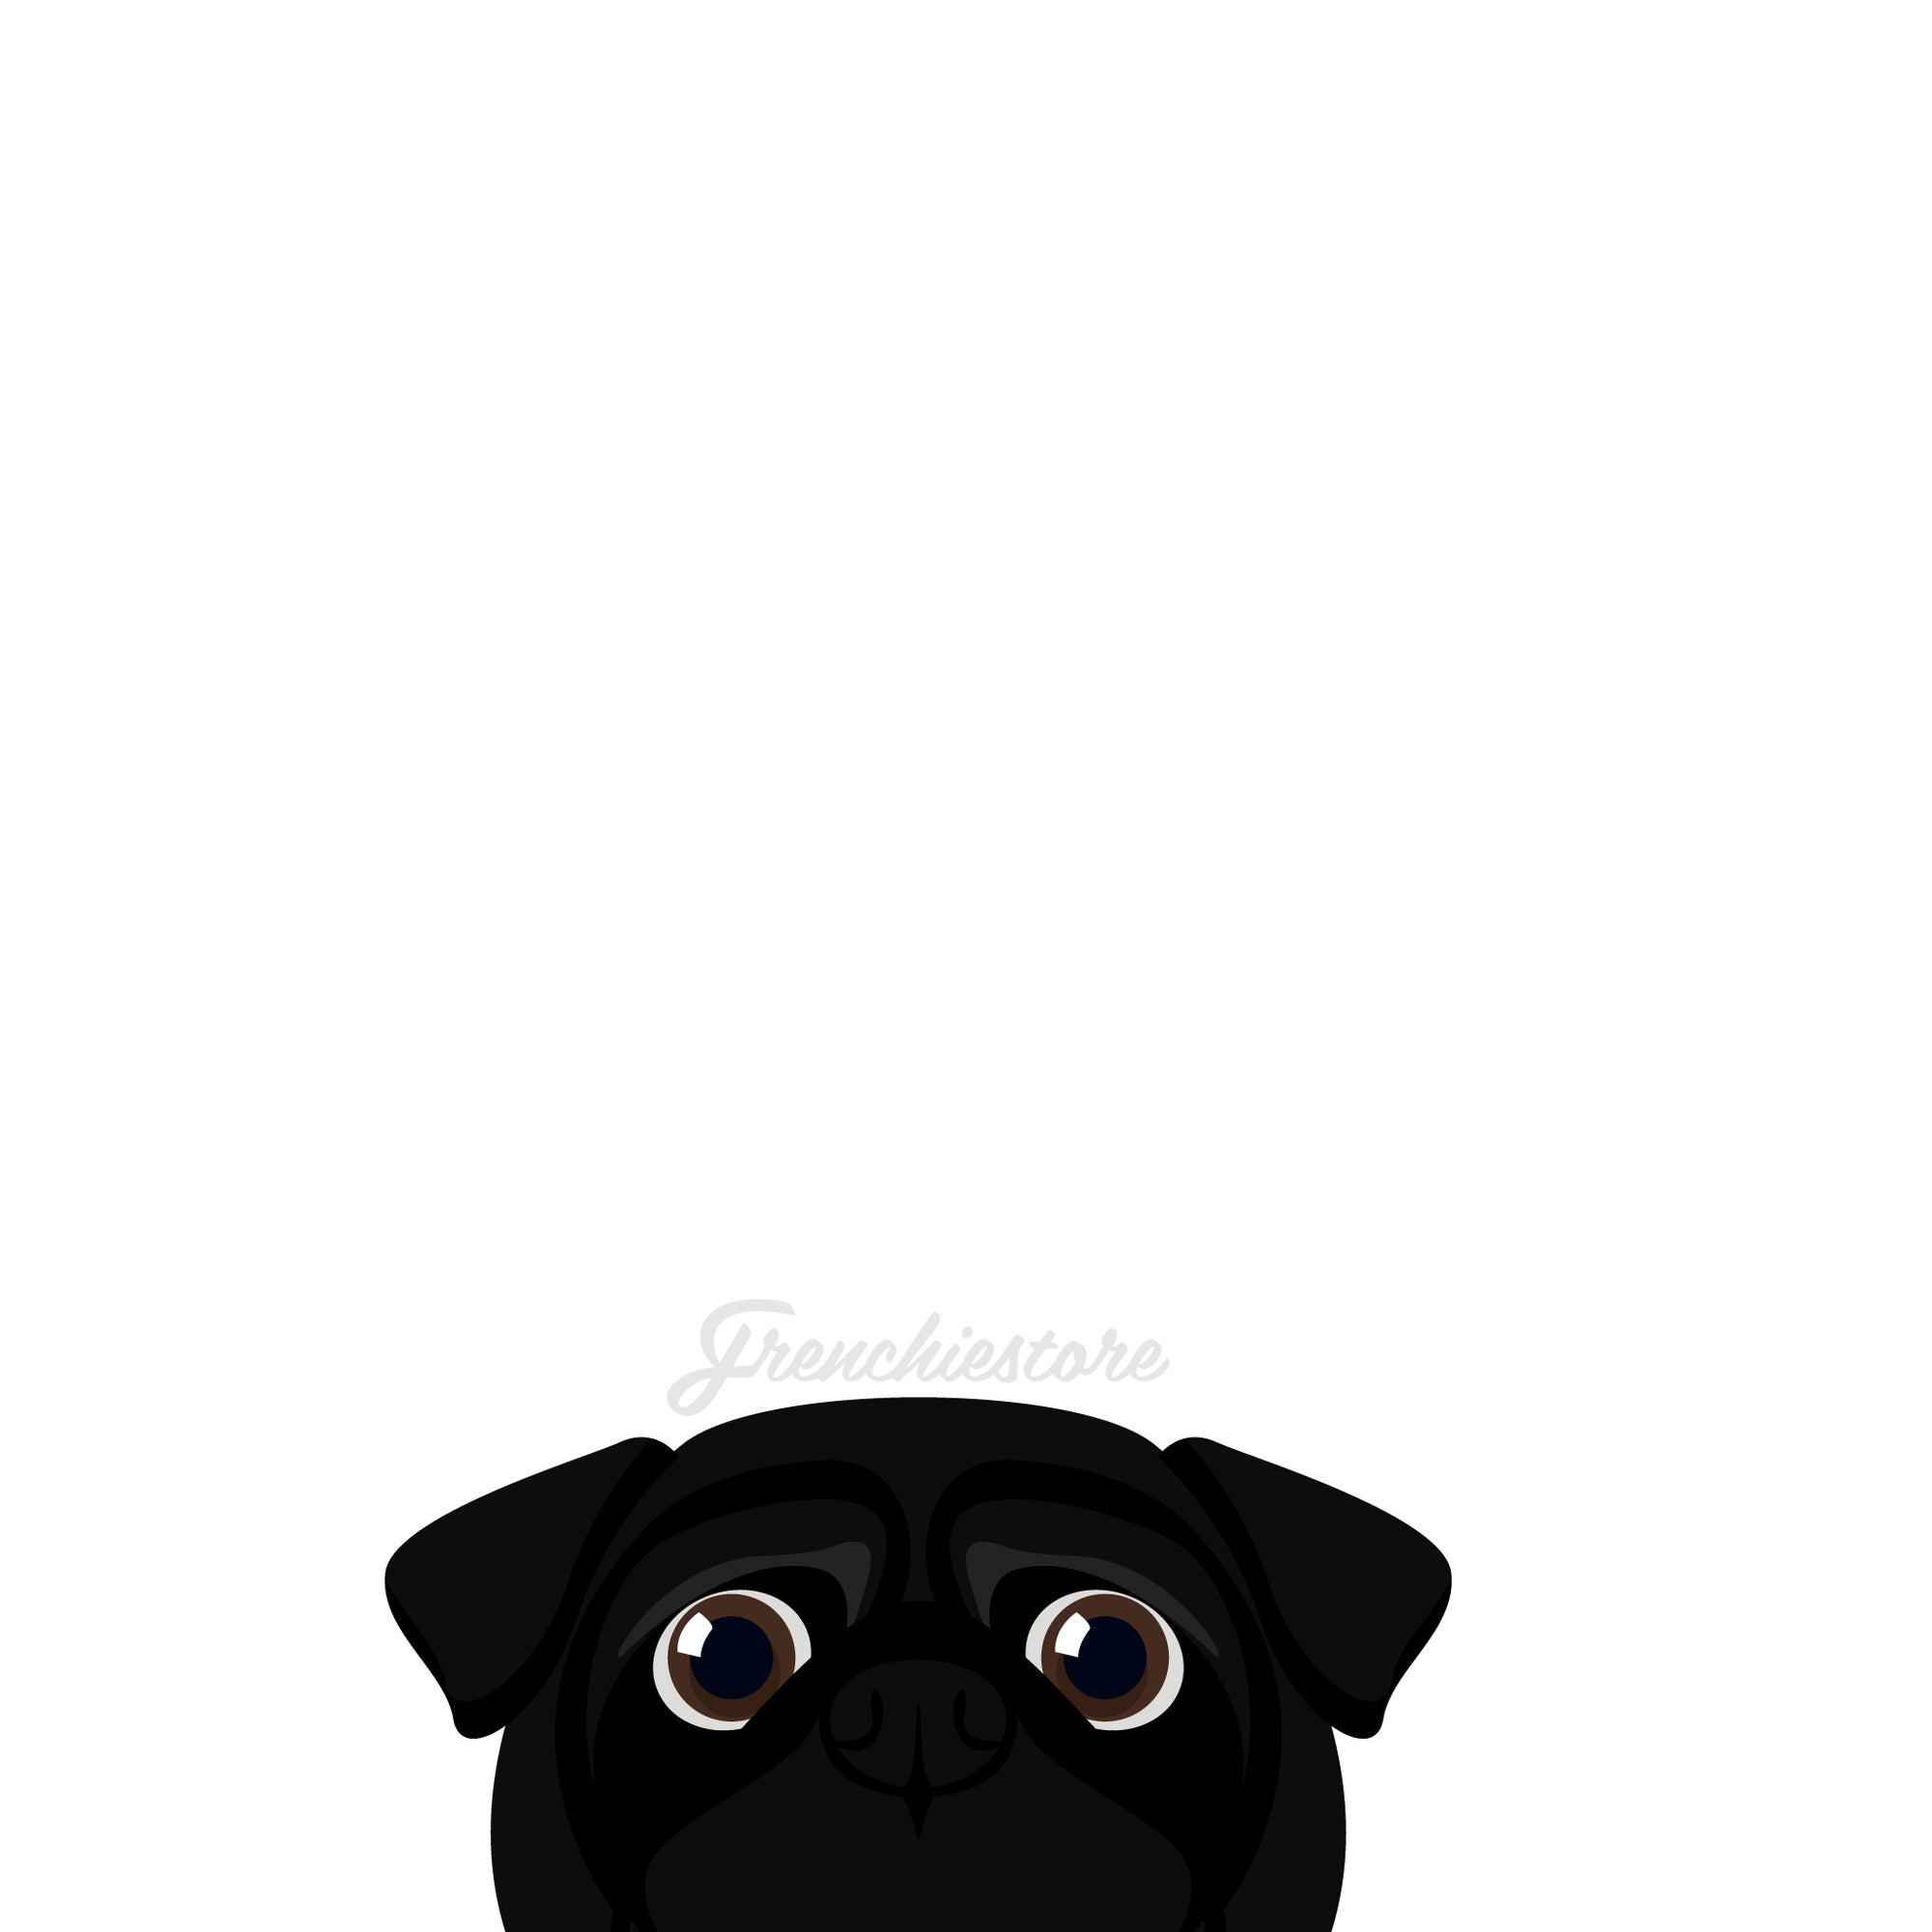 Pug Dog Sticker | Frenchiestore |  Black Pug Car Decal